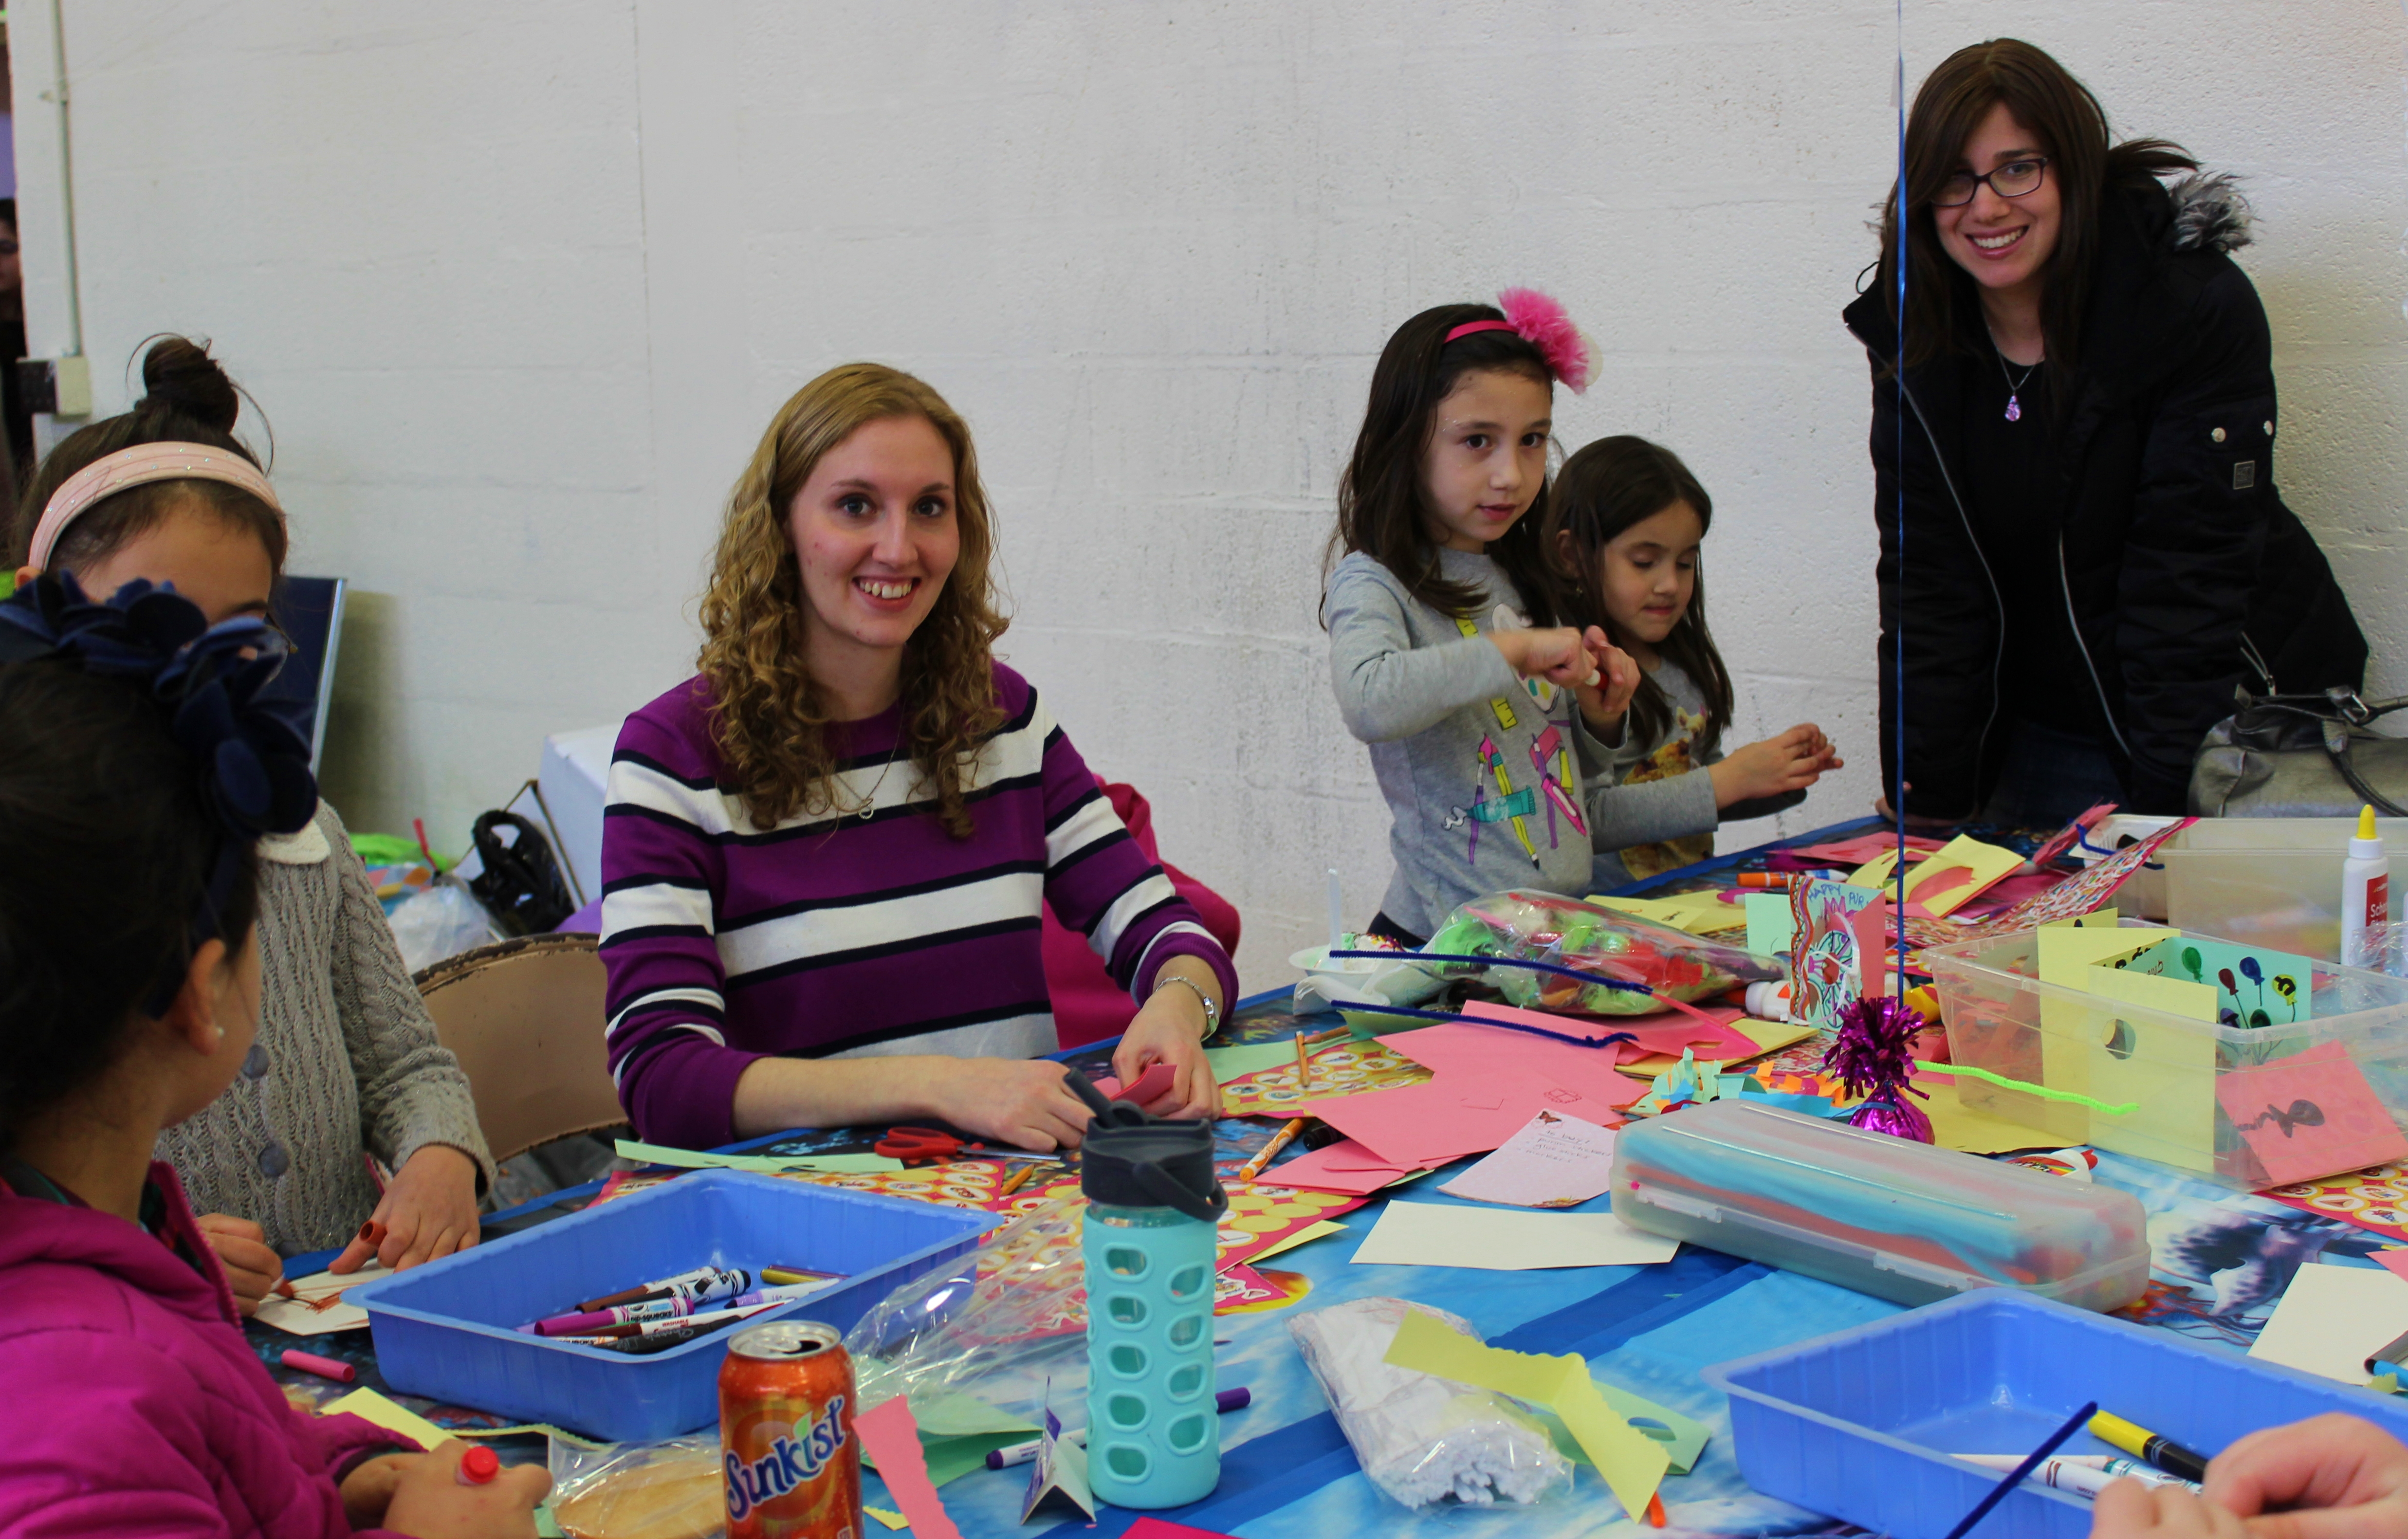 Smiling at the crafts table